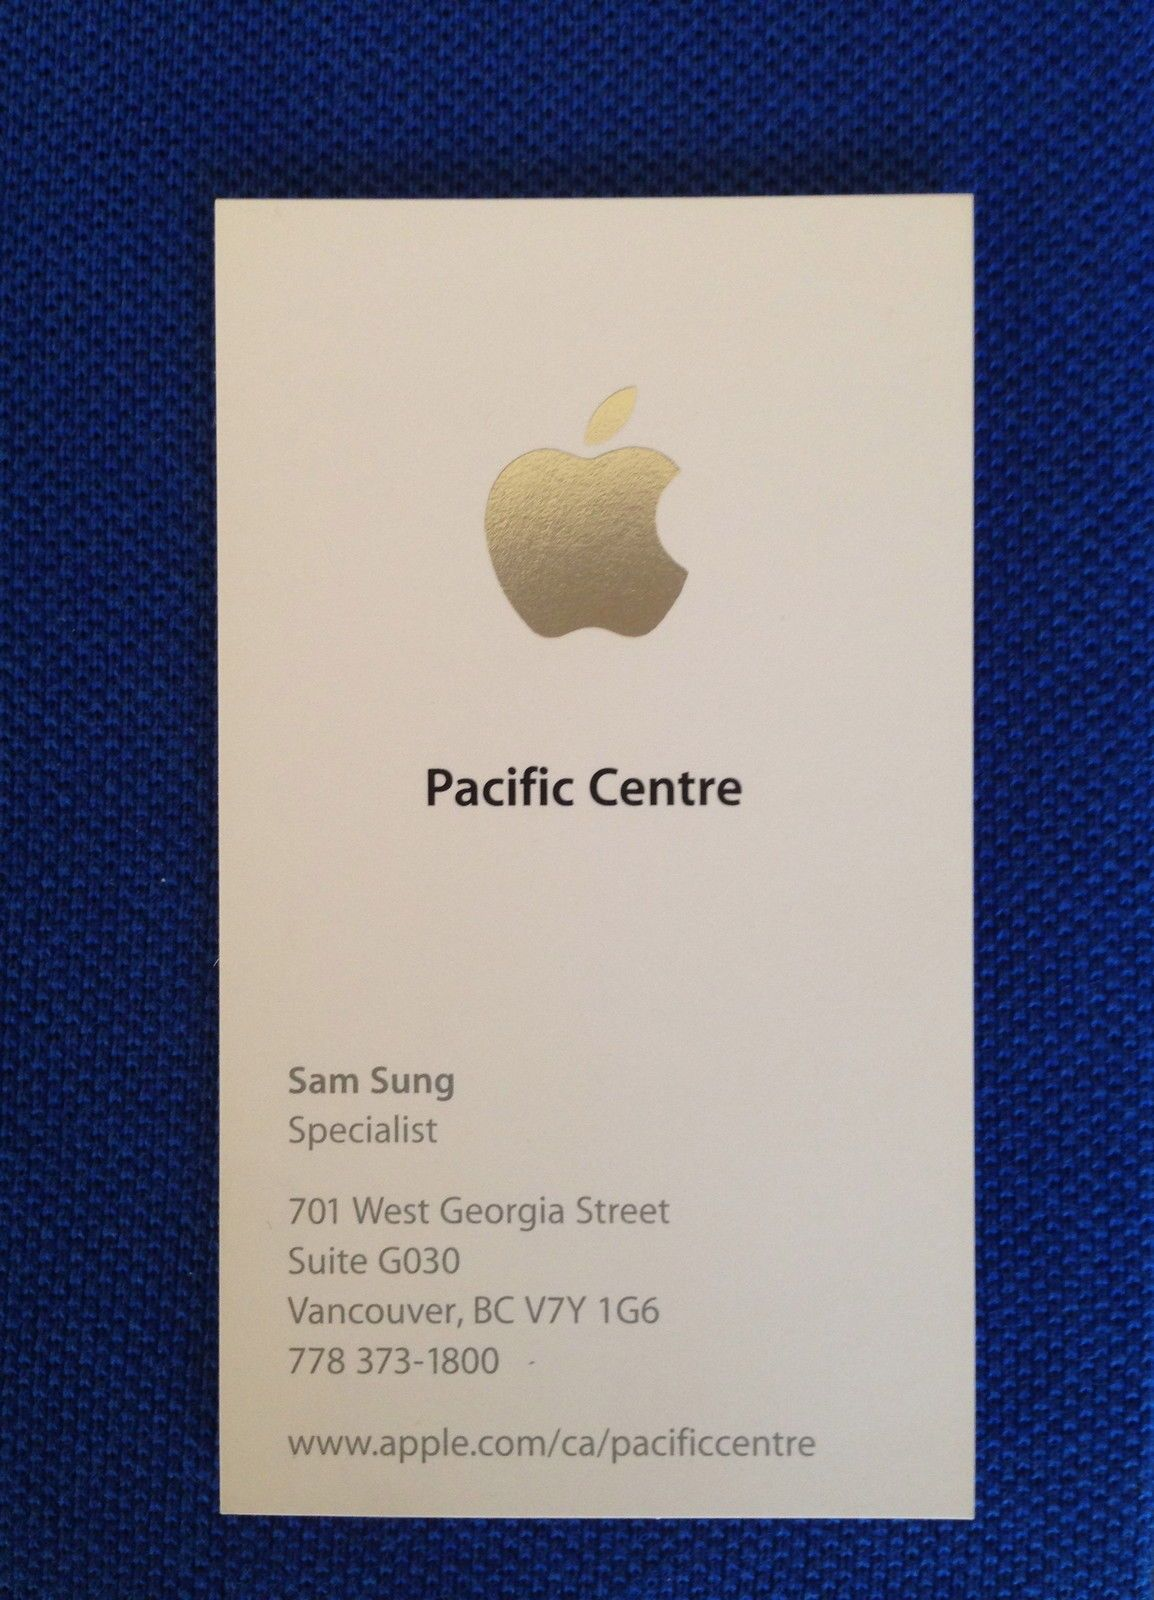 Pin By Iboy Kcwood On Business Card Collection Apple Business